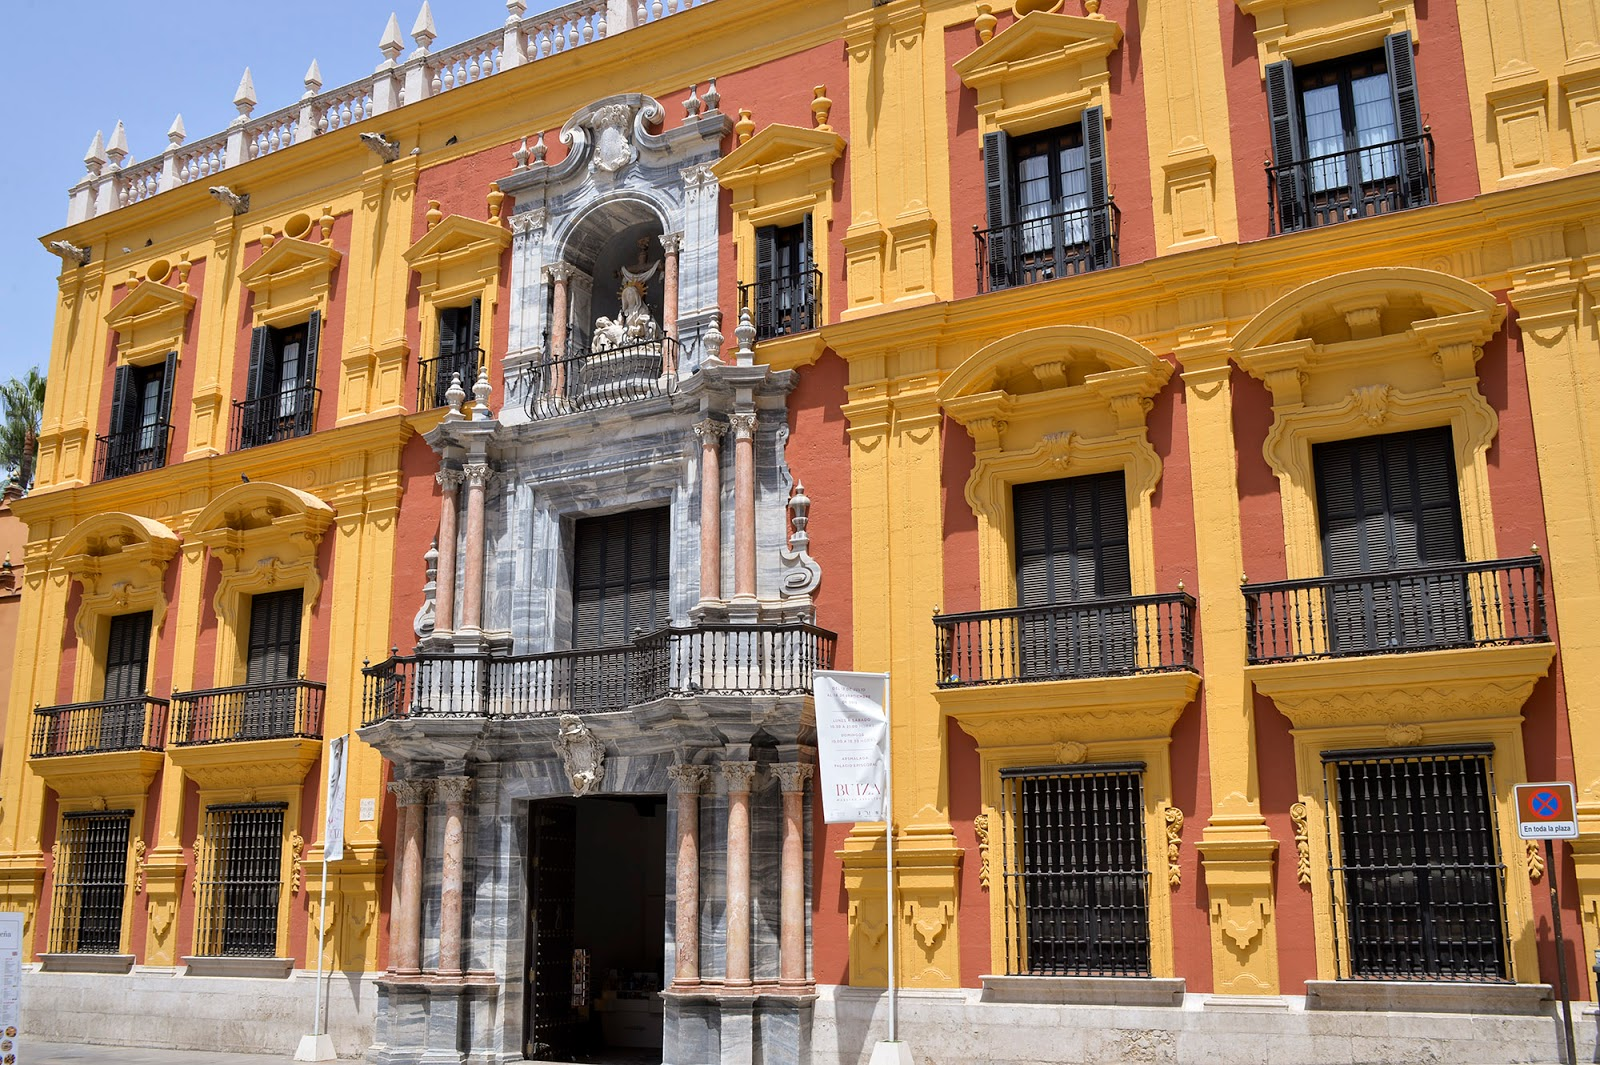 episcopal palace architecture malaga spain